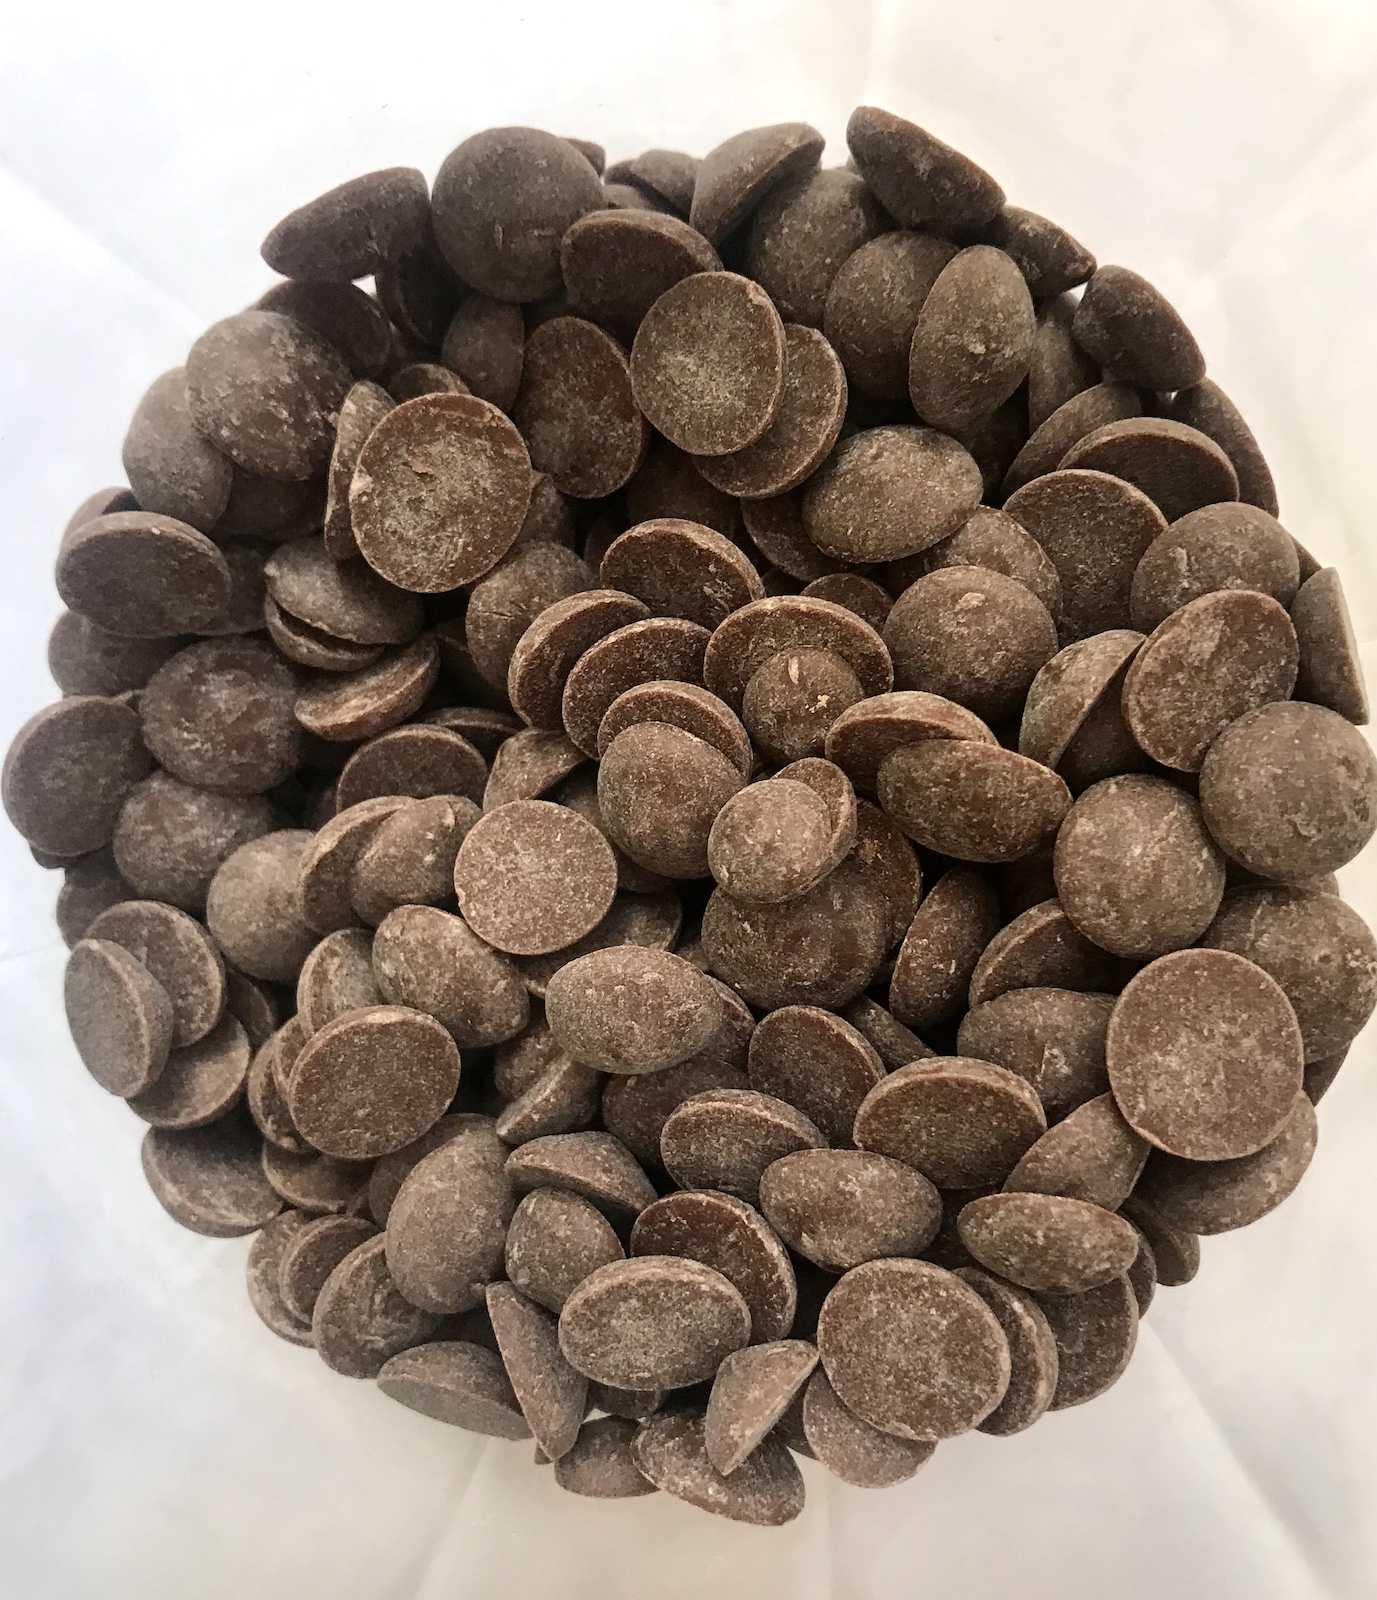 Image of a jar of milk chocolate drops in bulk, ready for your own containers